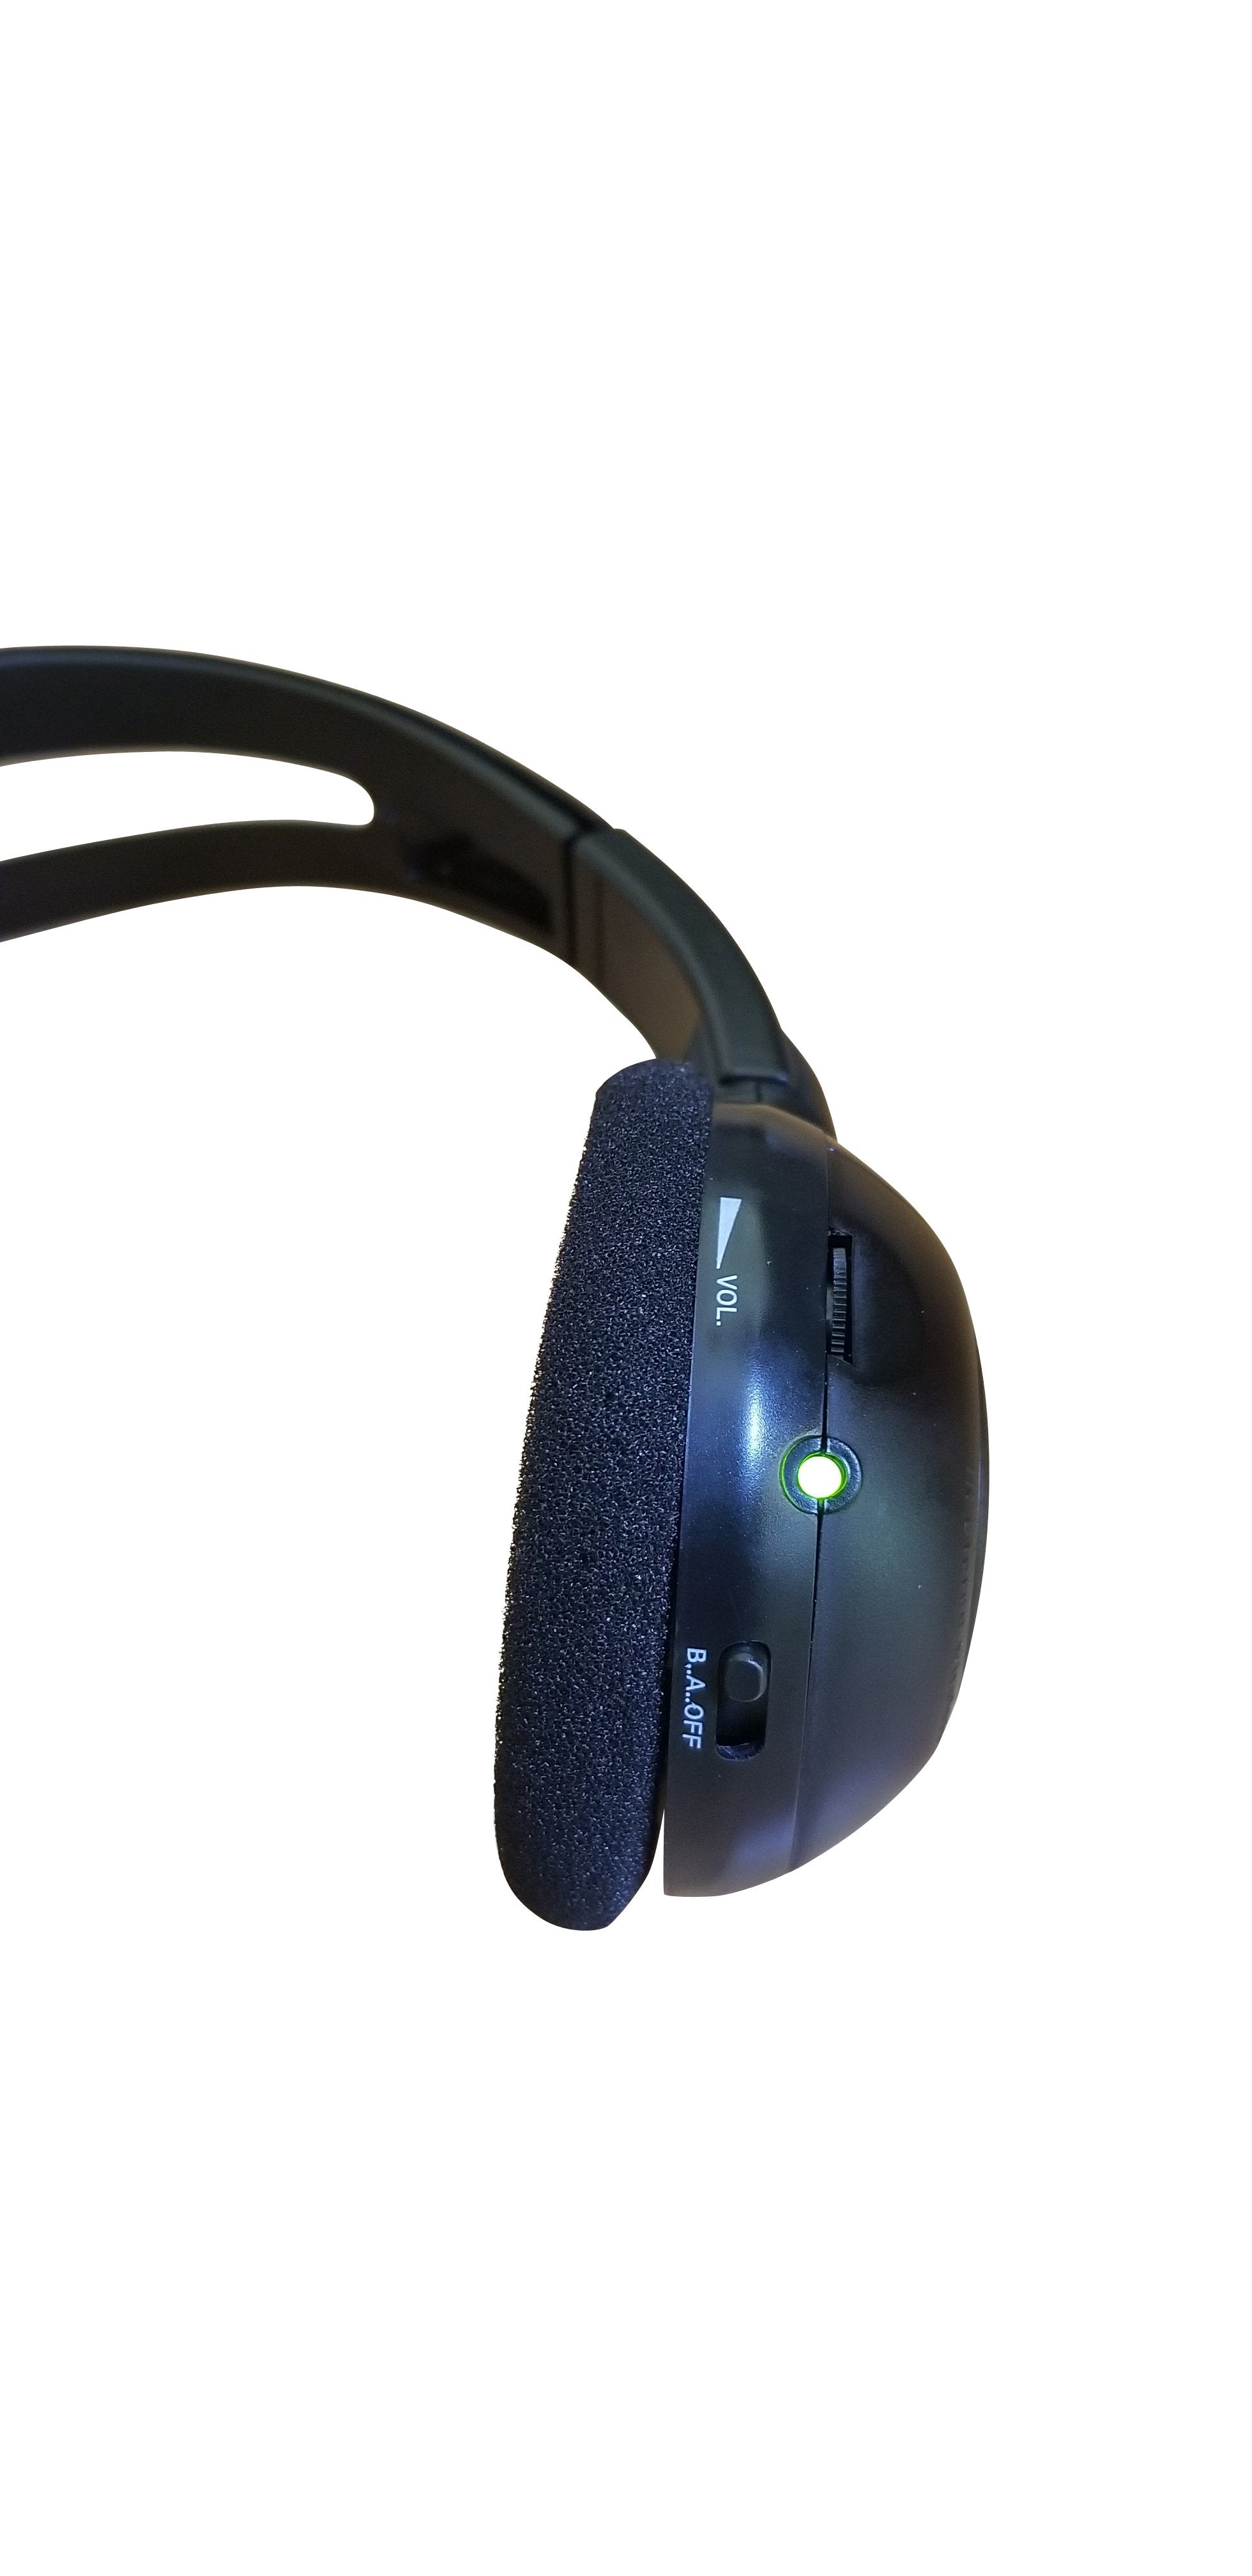 2011 Chrysler Town & Country Wireless DVD Headphone